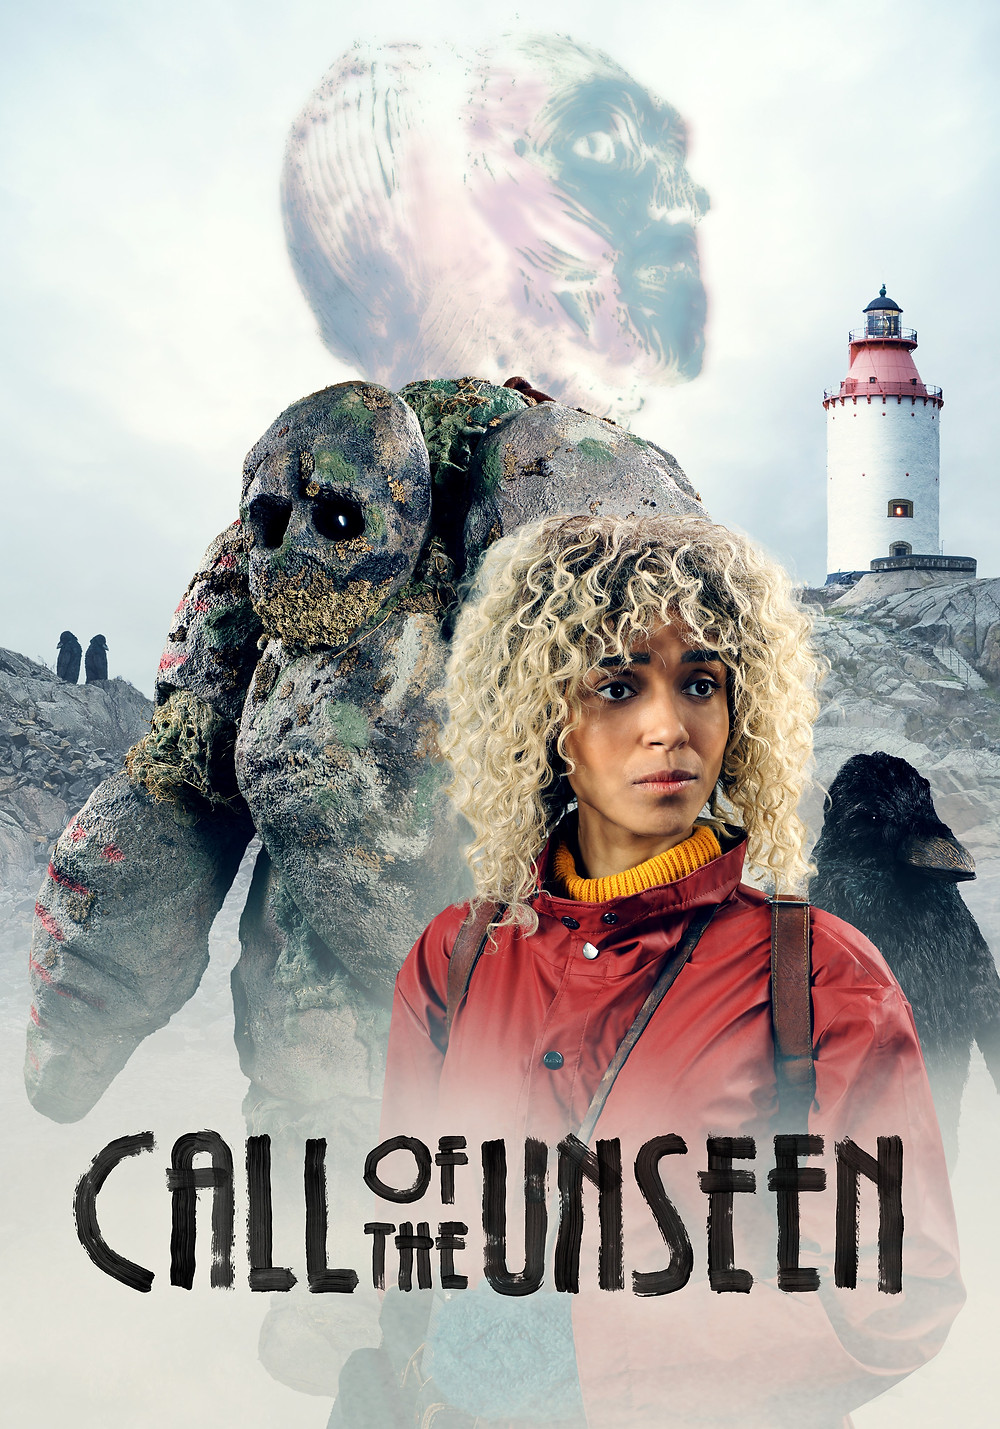 Simon to score fantasy feature Call of the Unseen